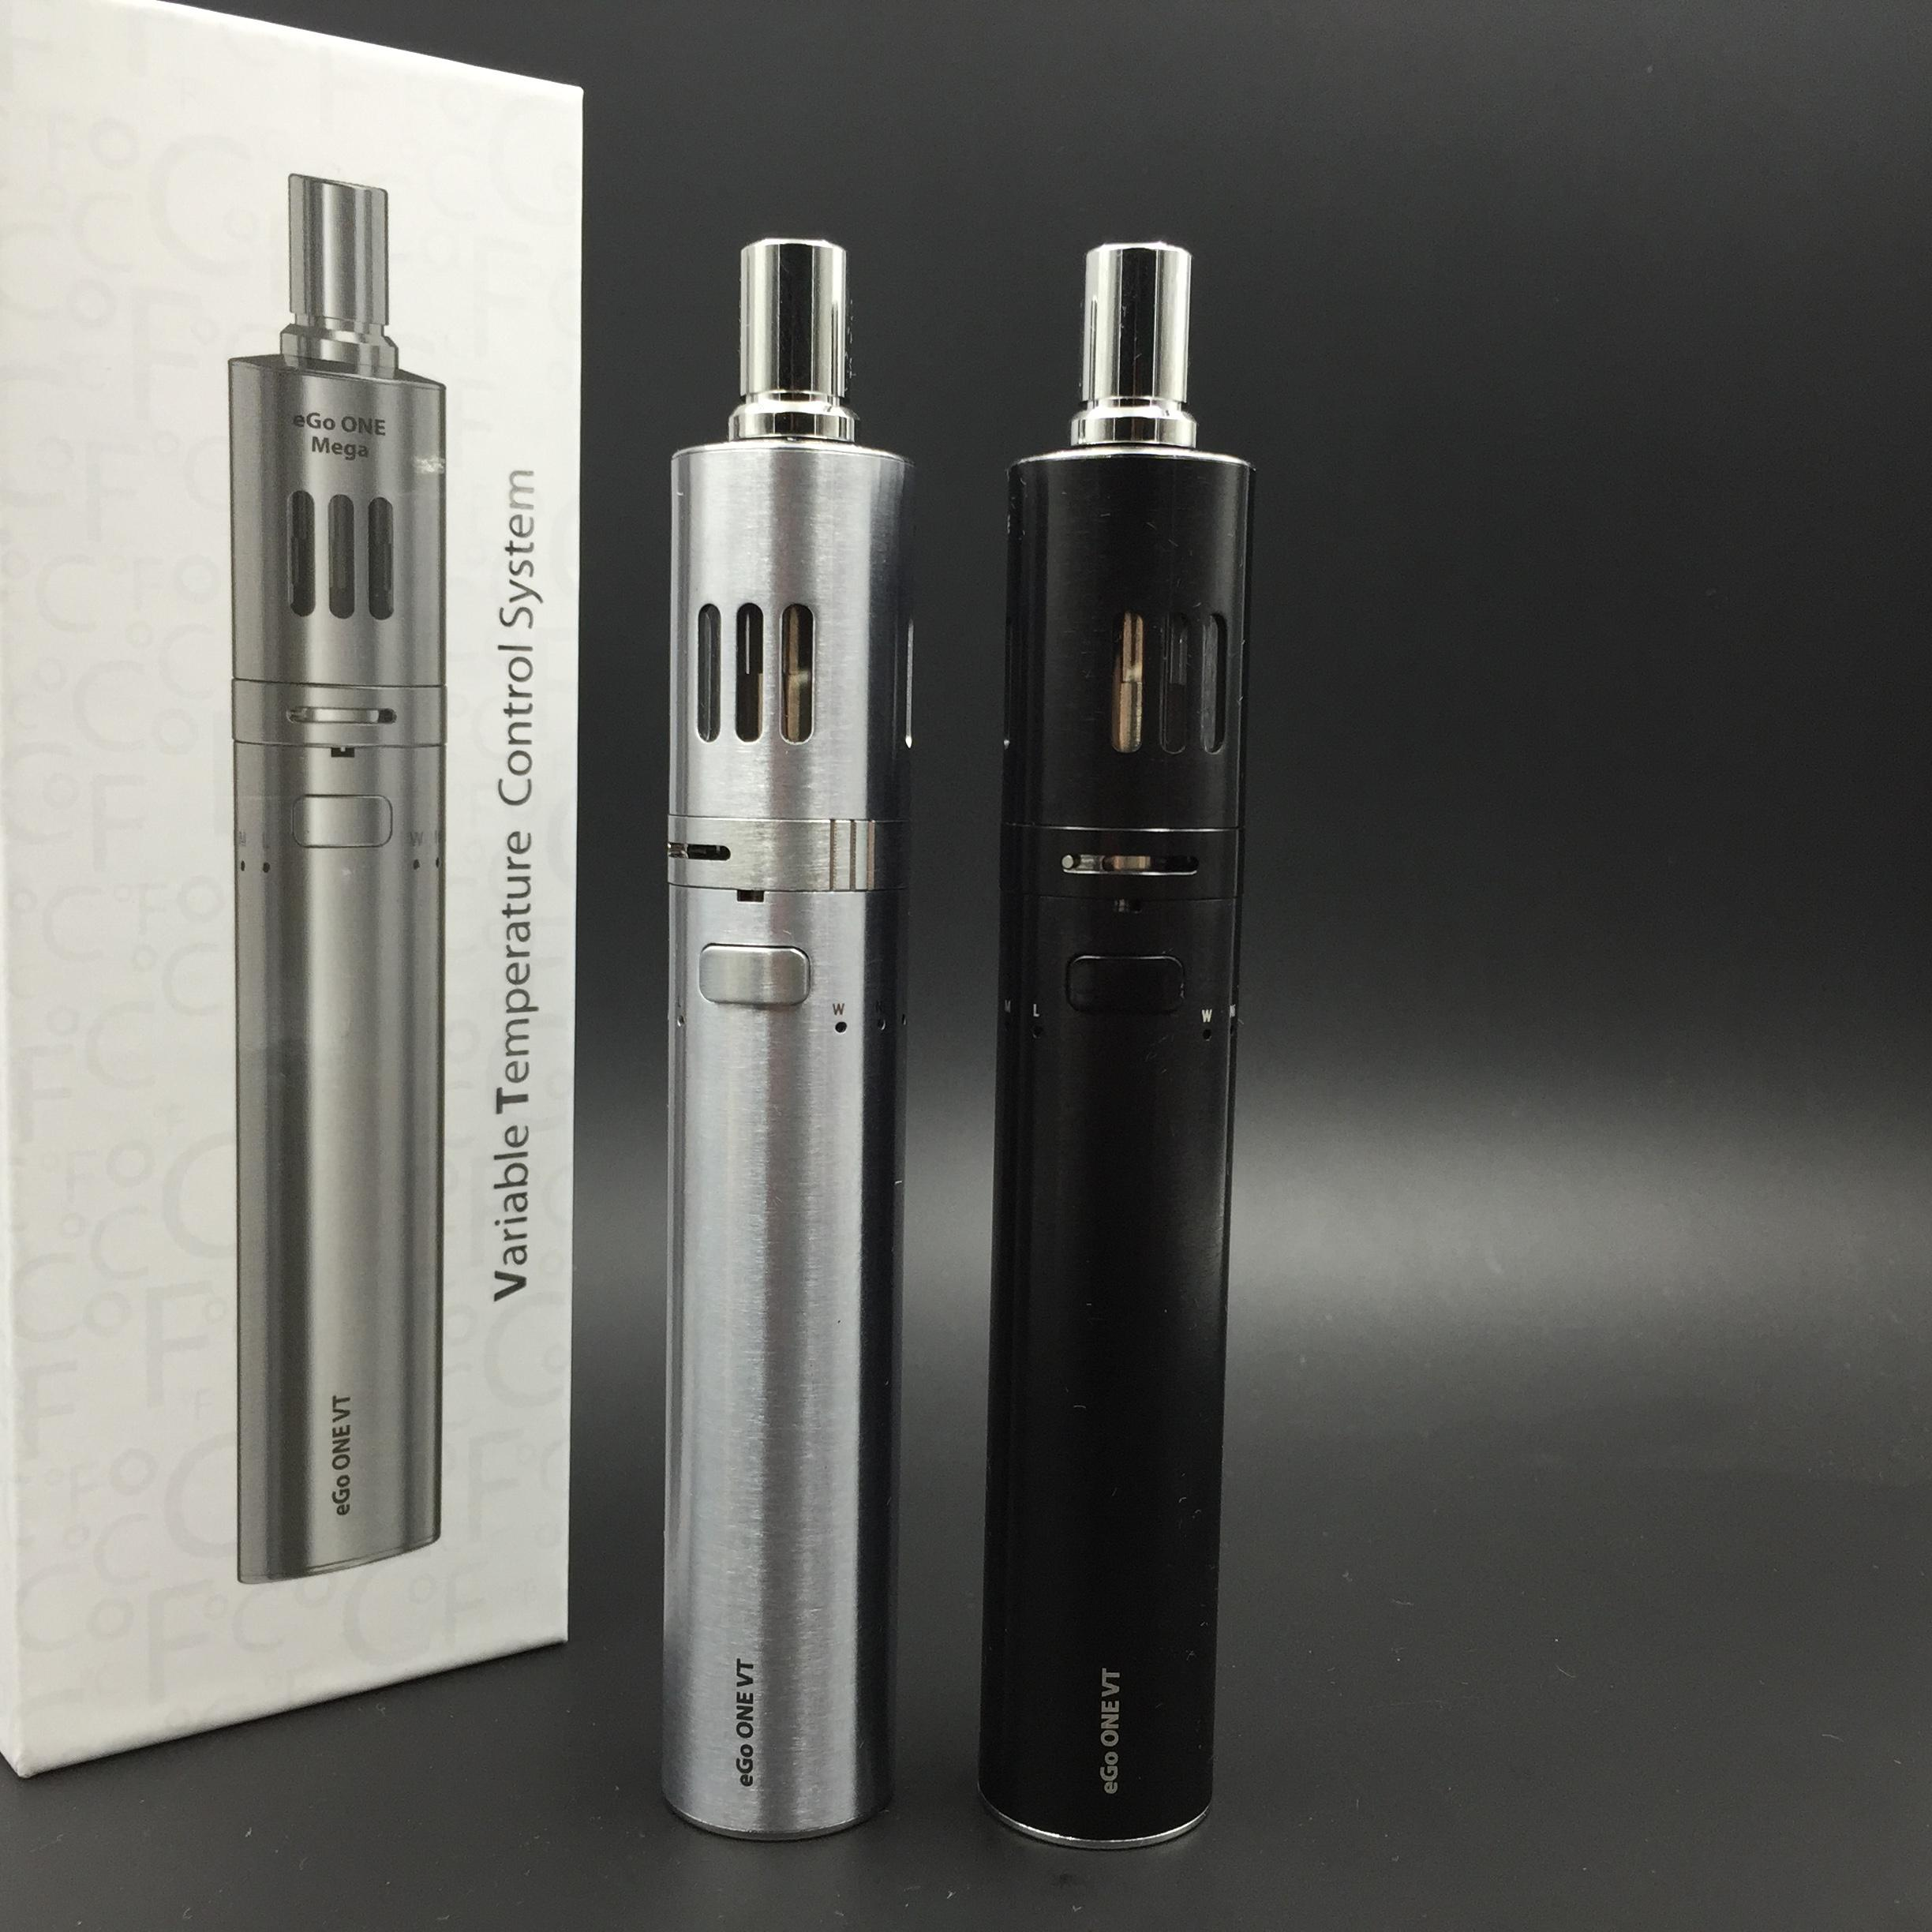 Original Joyetech eGo One VT Kit Joyetech Temperature Control Vape Pen Kit vs Kanger Subvod Kit